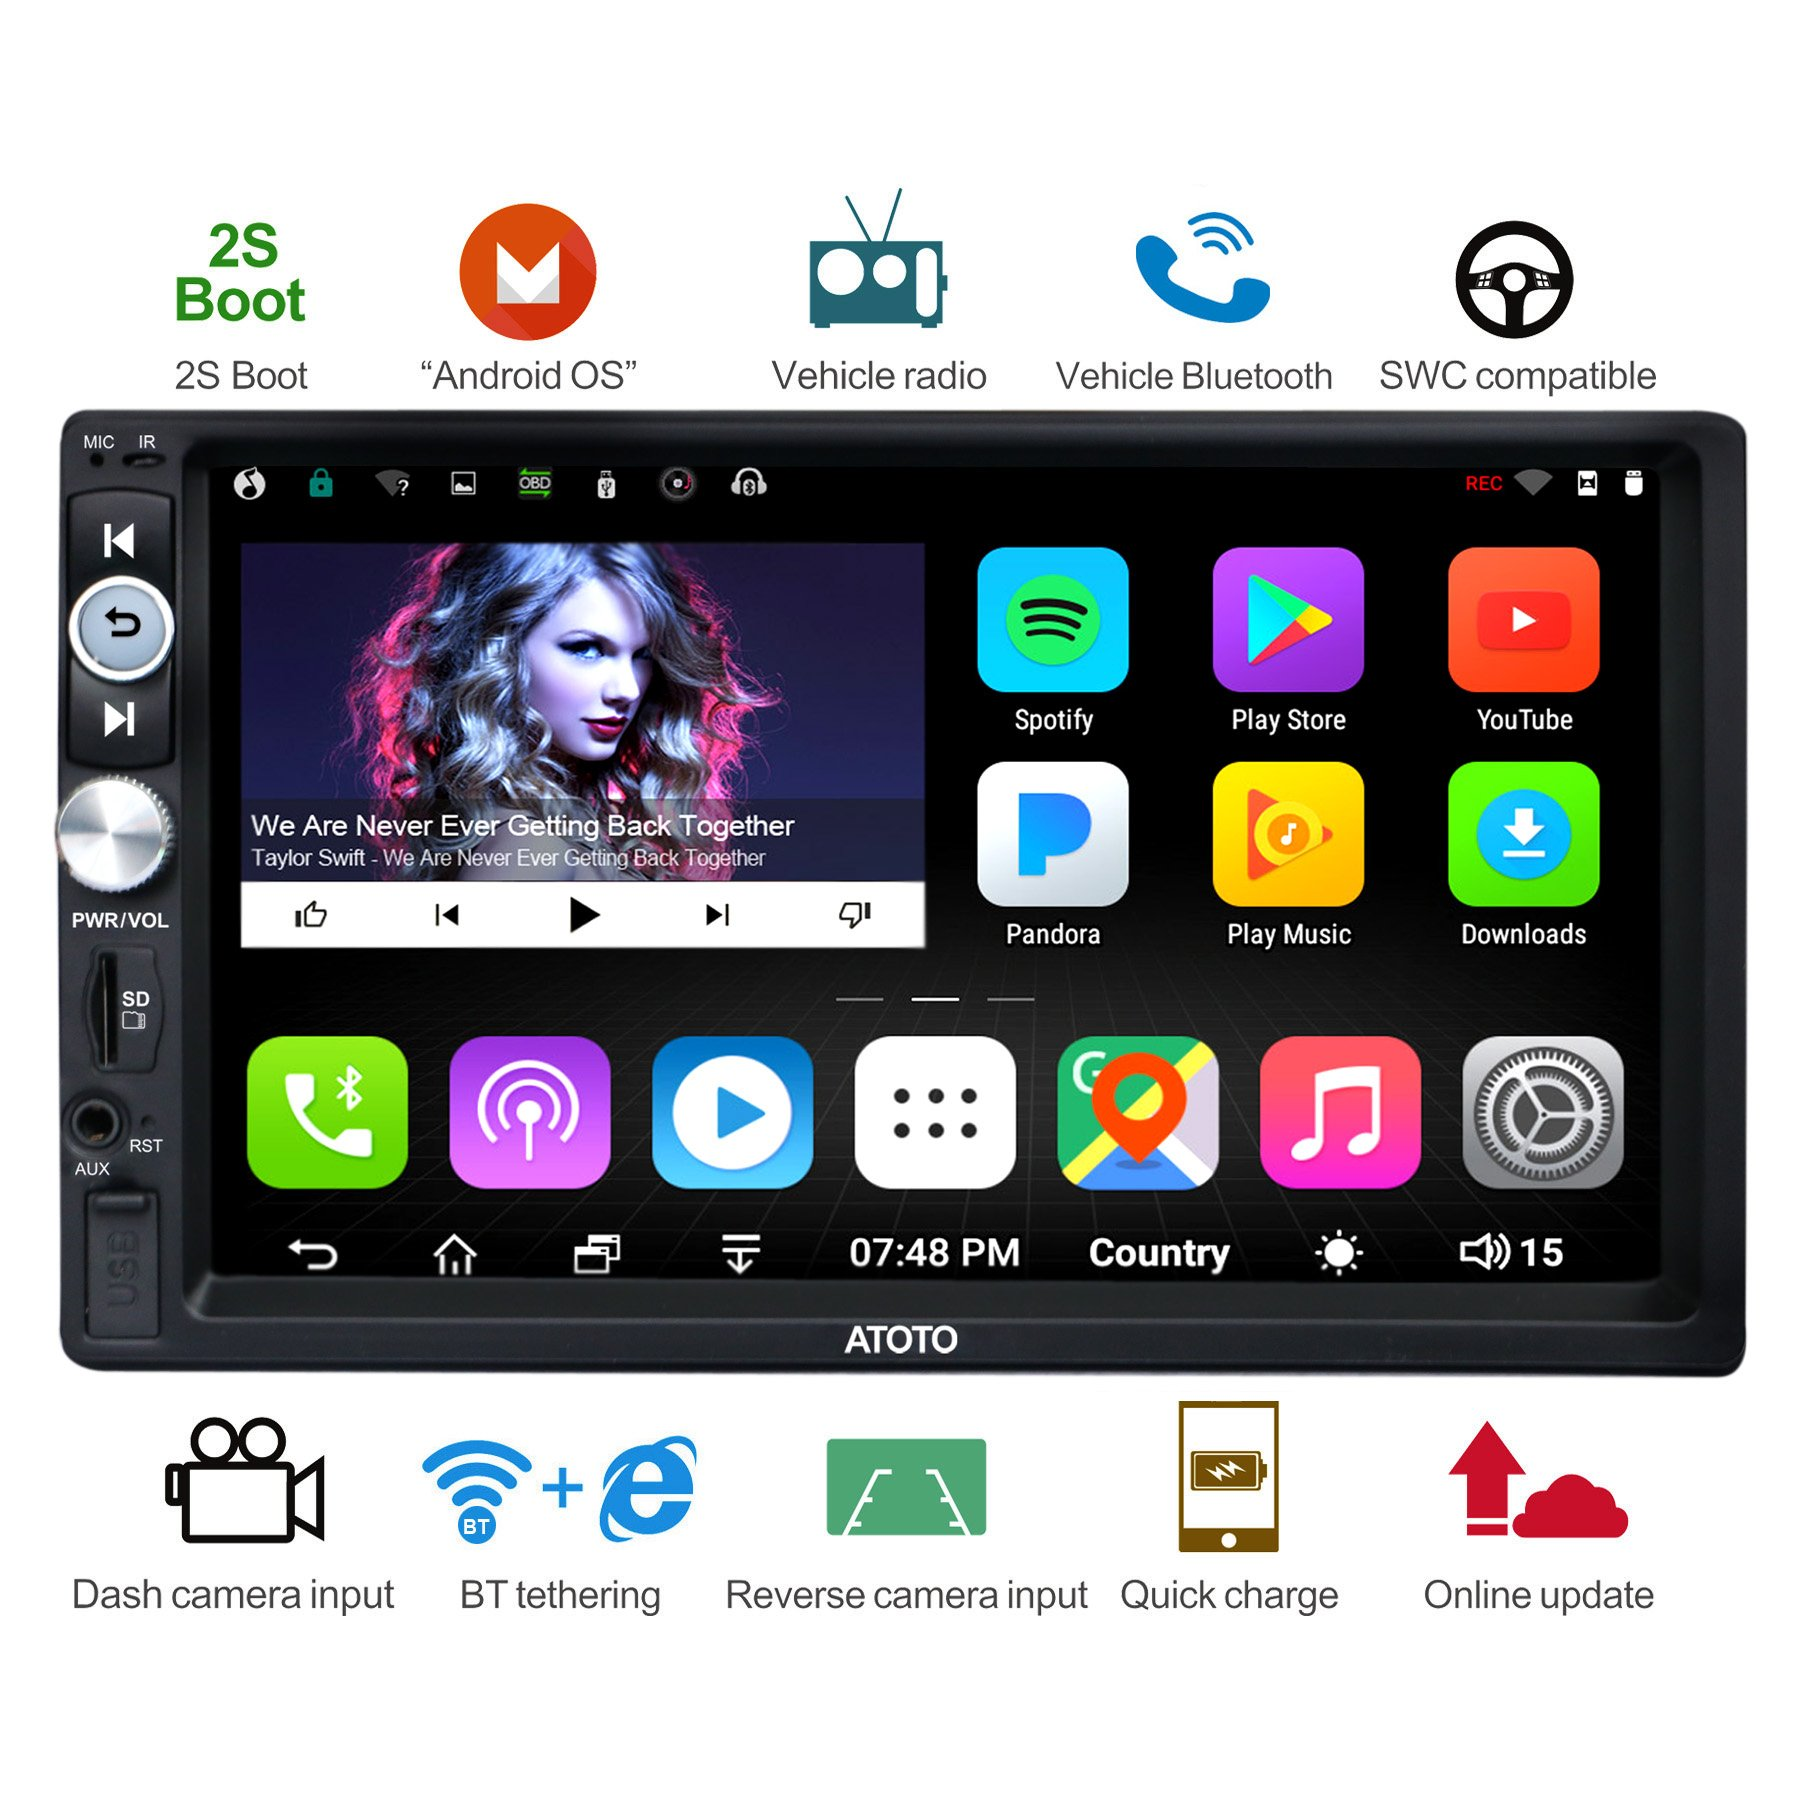 [NEW] ATOTO A6 2DIN Android Car Navigation Stereo with Dual Bluetooth & 2A Charge -Premium A6Y1721PB 2G/32G Car Entertainment Multimedia Radio,WiFi/BT Tethering internet,support 256G SD &more